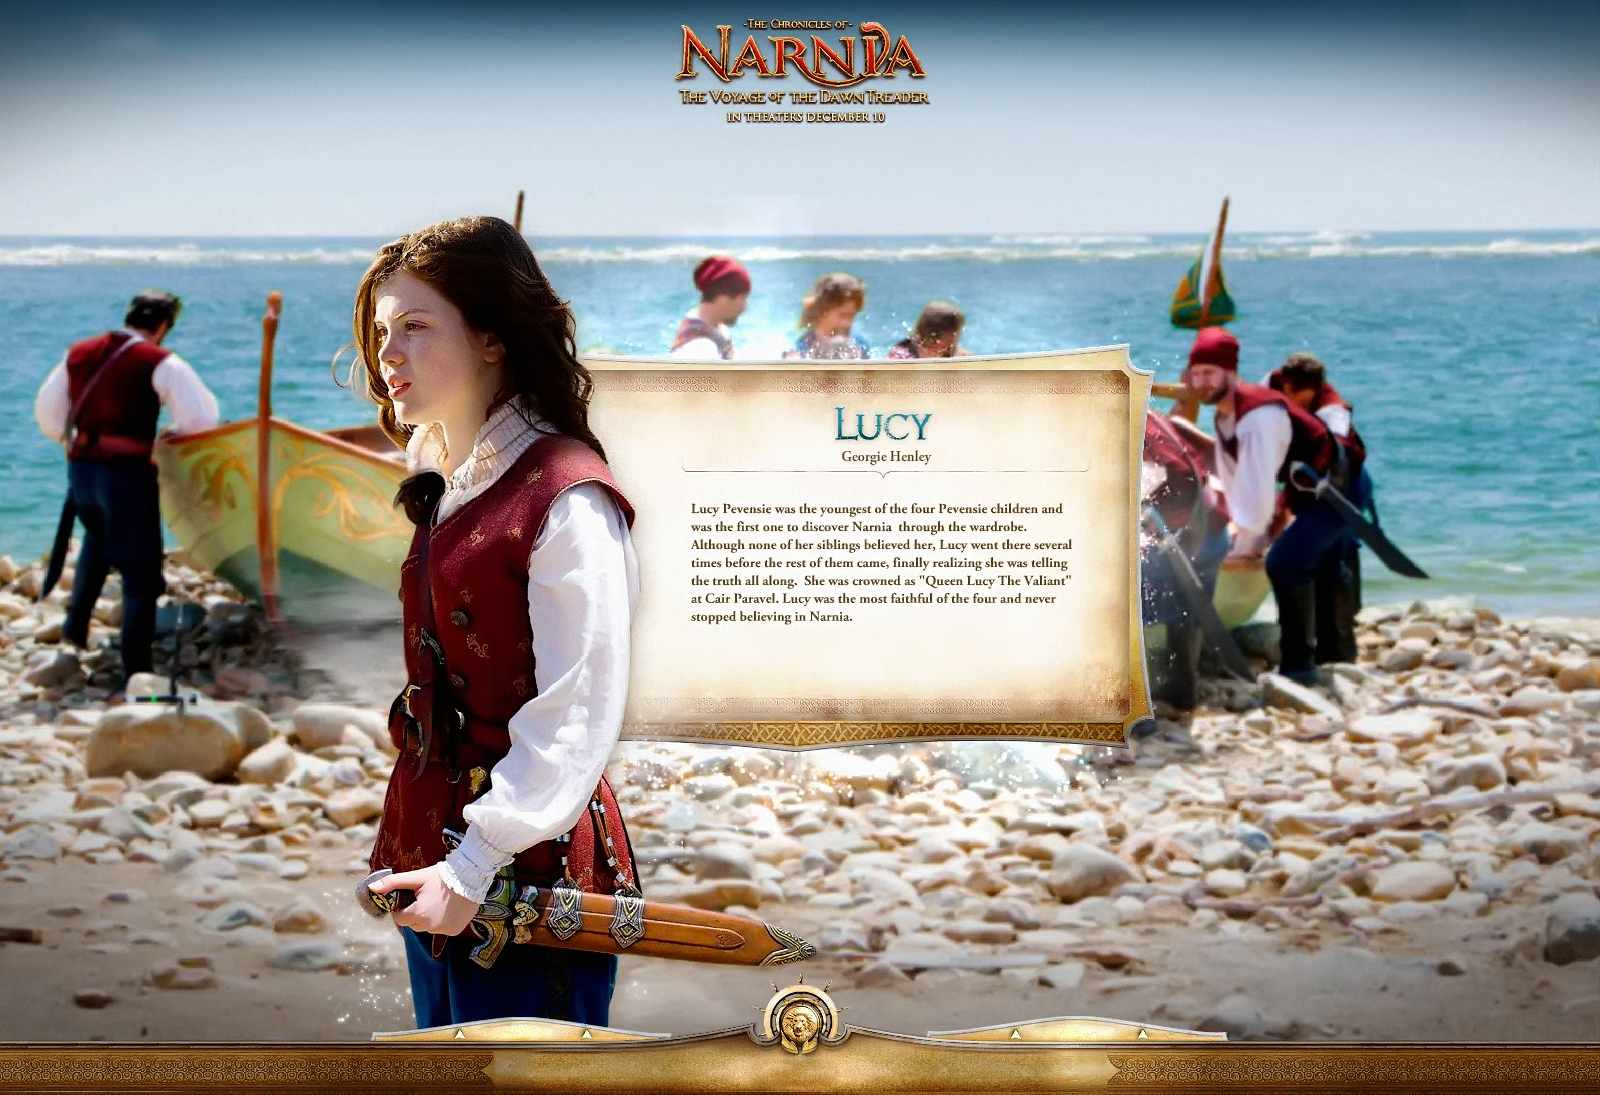 1600x1095 - The Chronicles of Narnia: The Voyage of the Dawn Treader Wallpapers 7